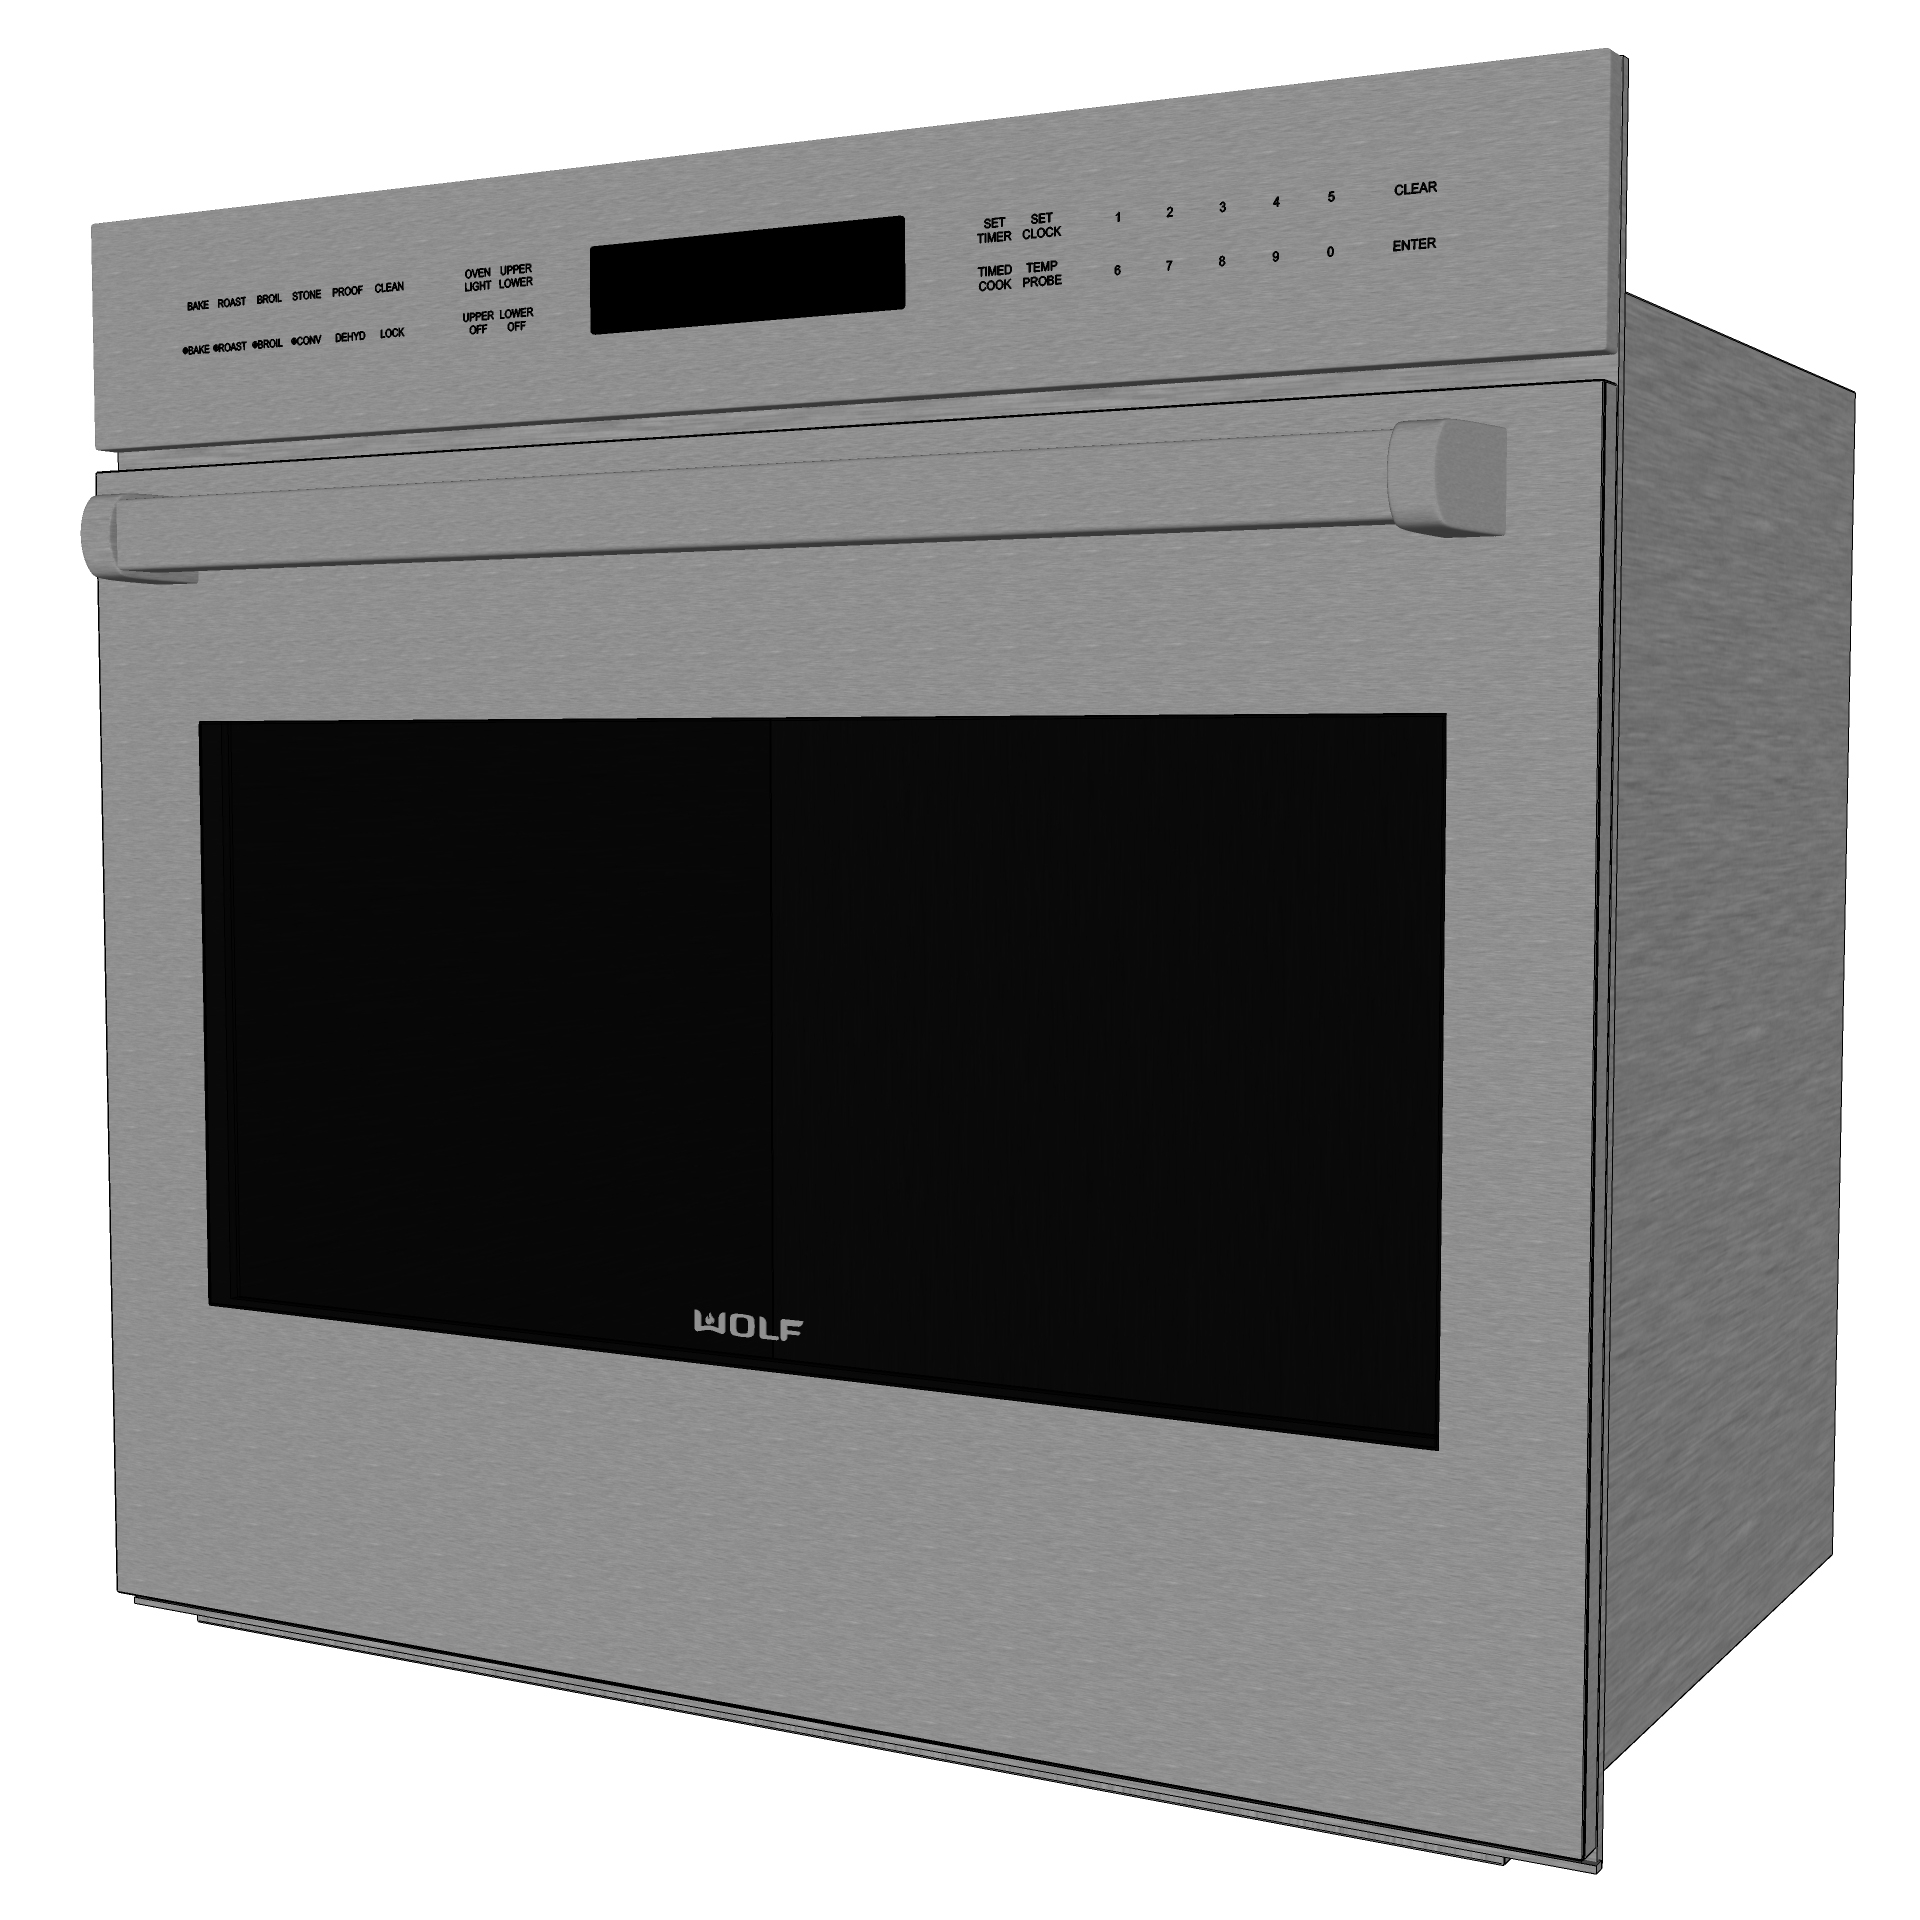 Oven AI 01 Screenshot.jpg